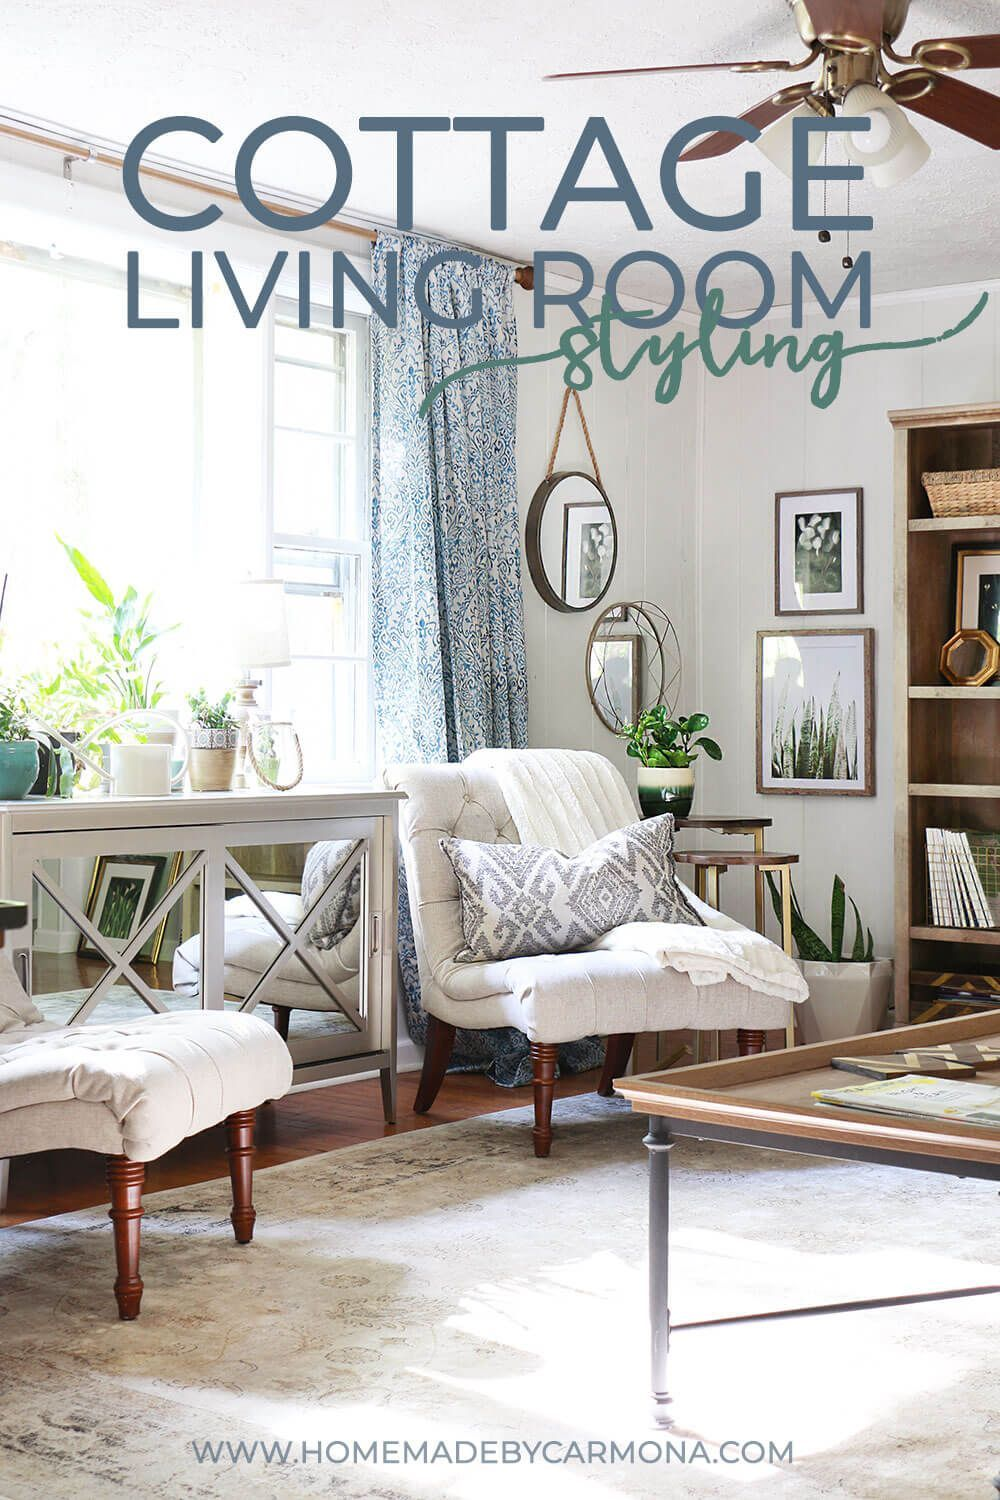 Not too long ago, my cottage living room resembled ...